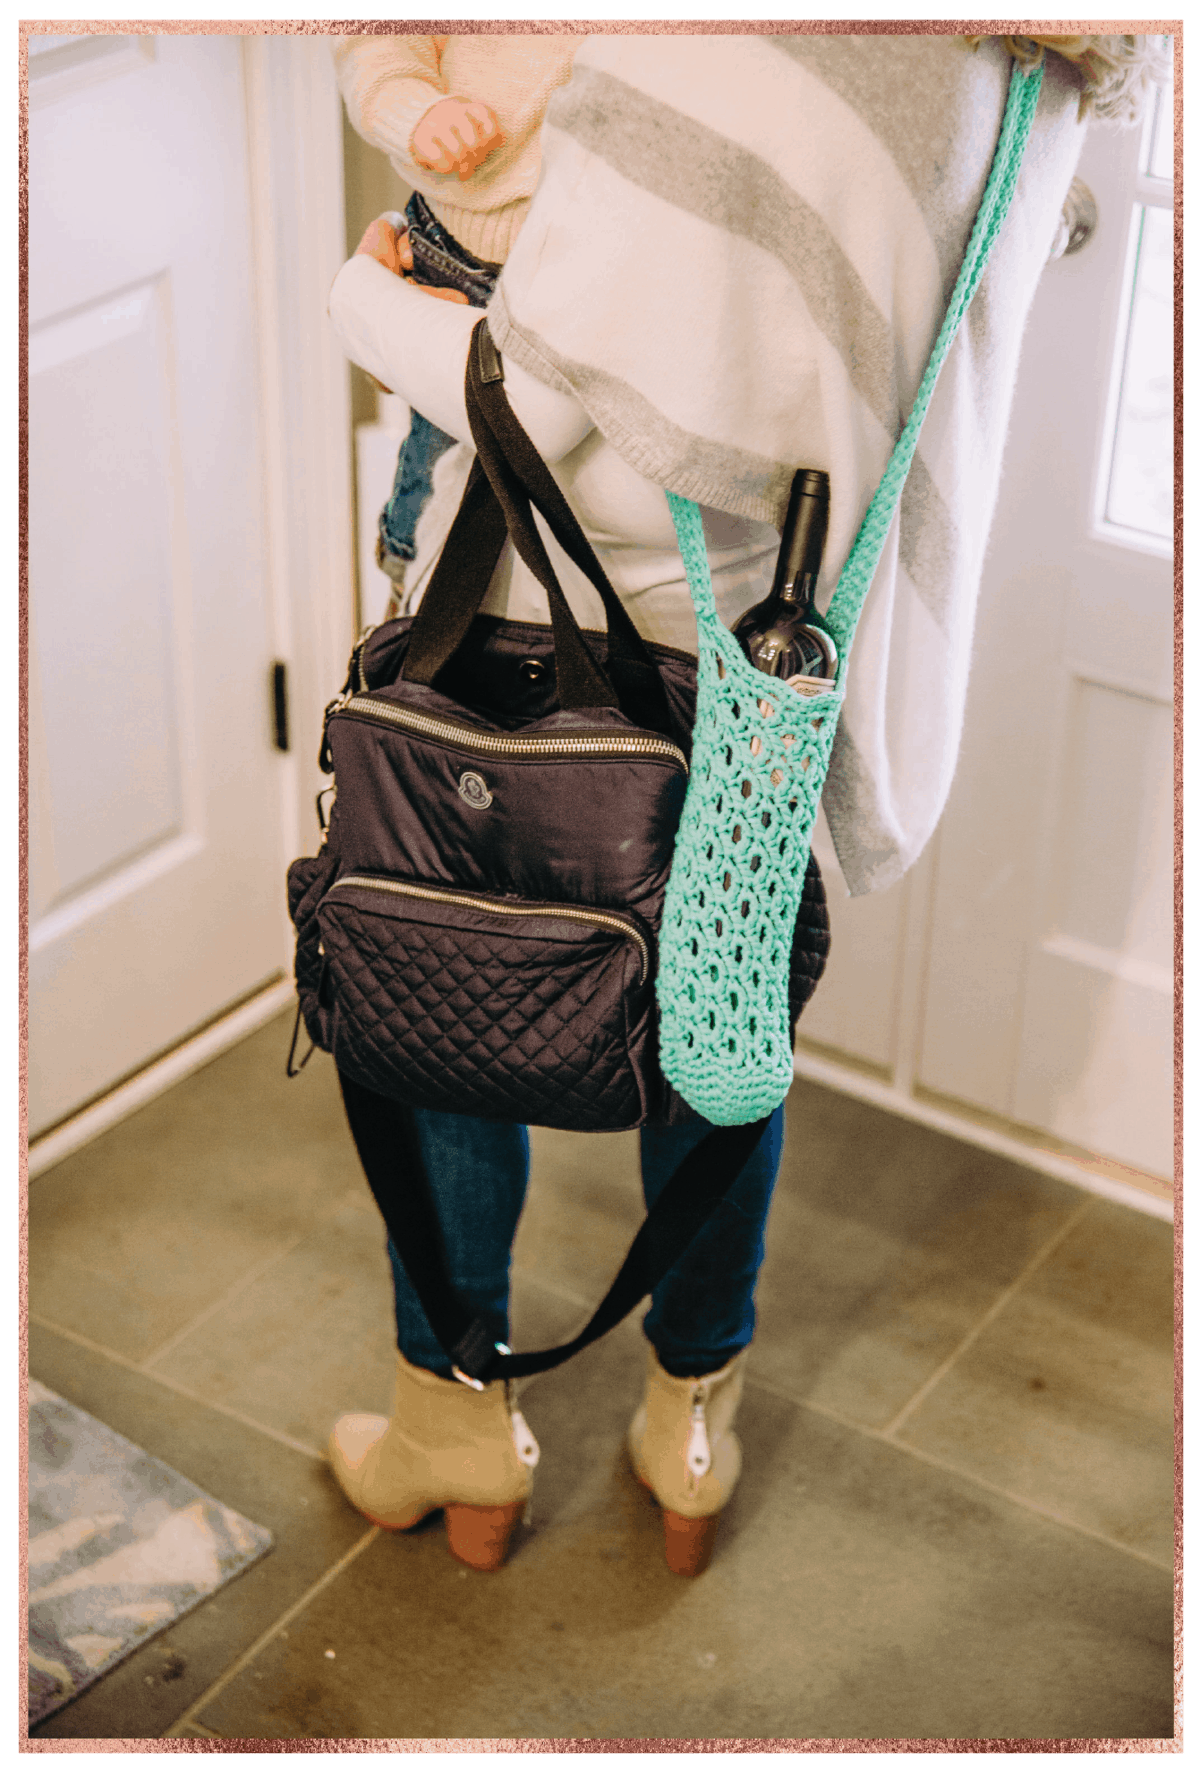 Diaper bag and wine